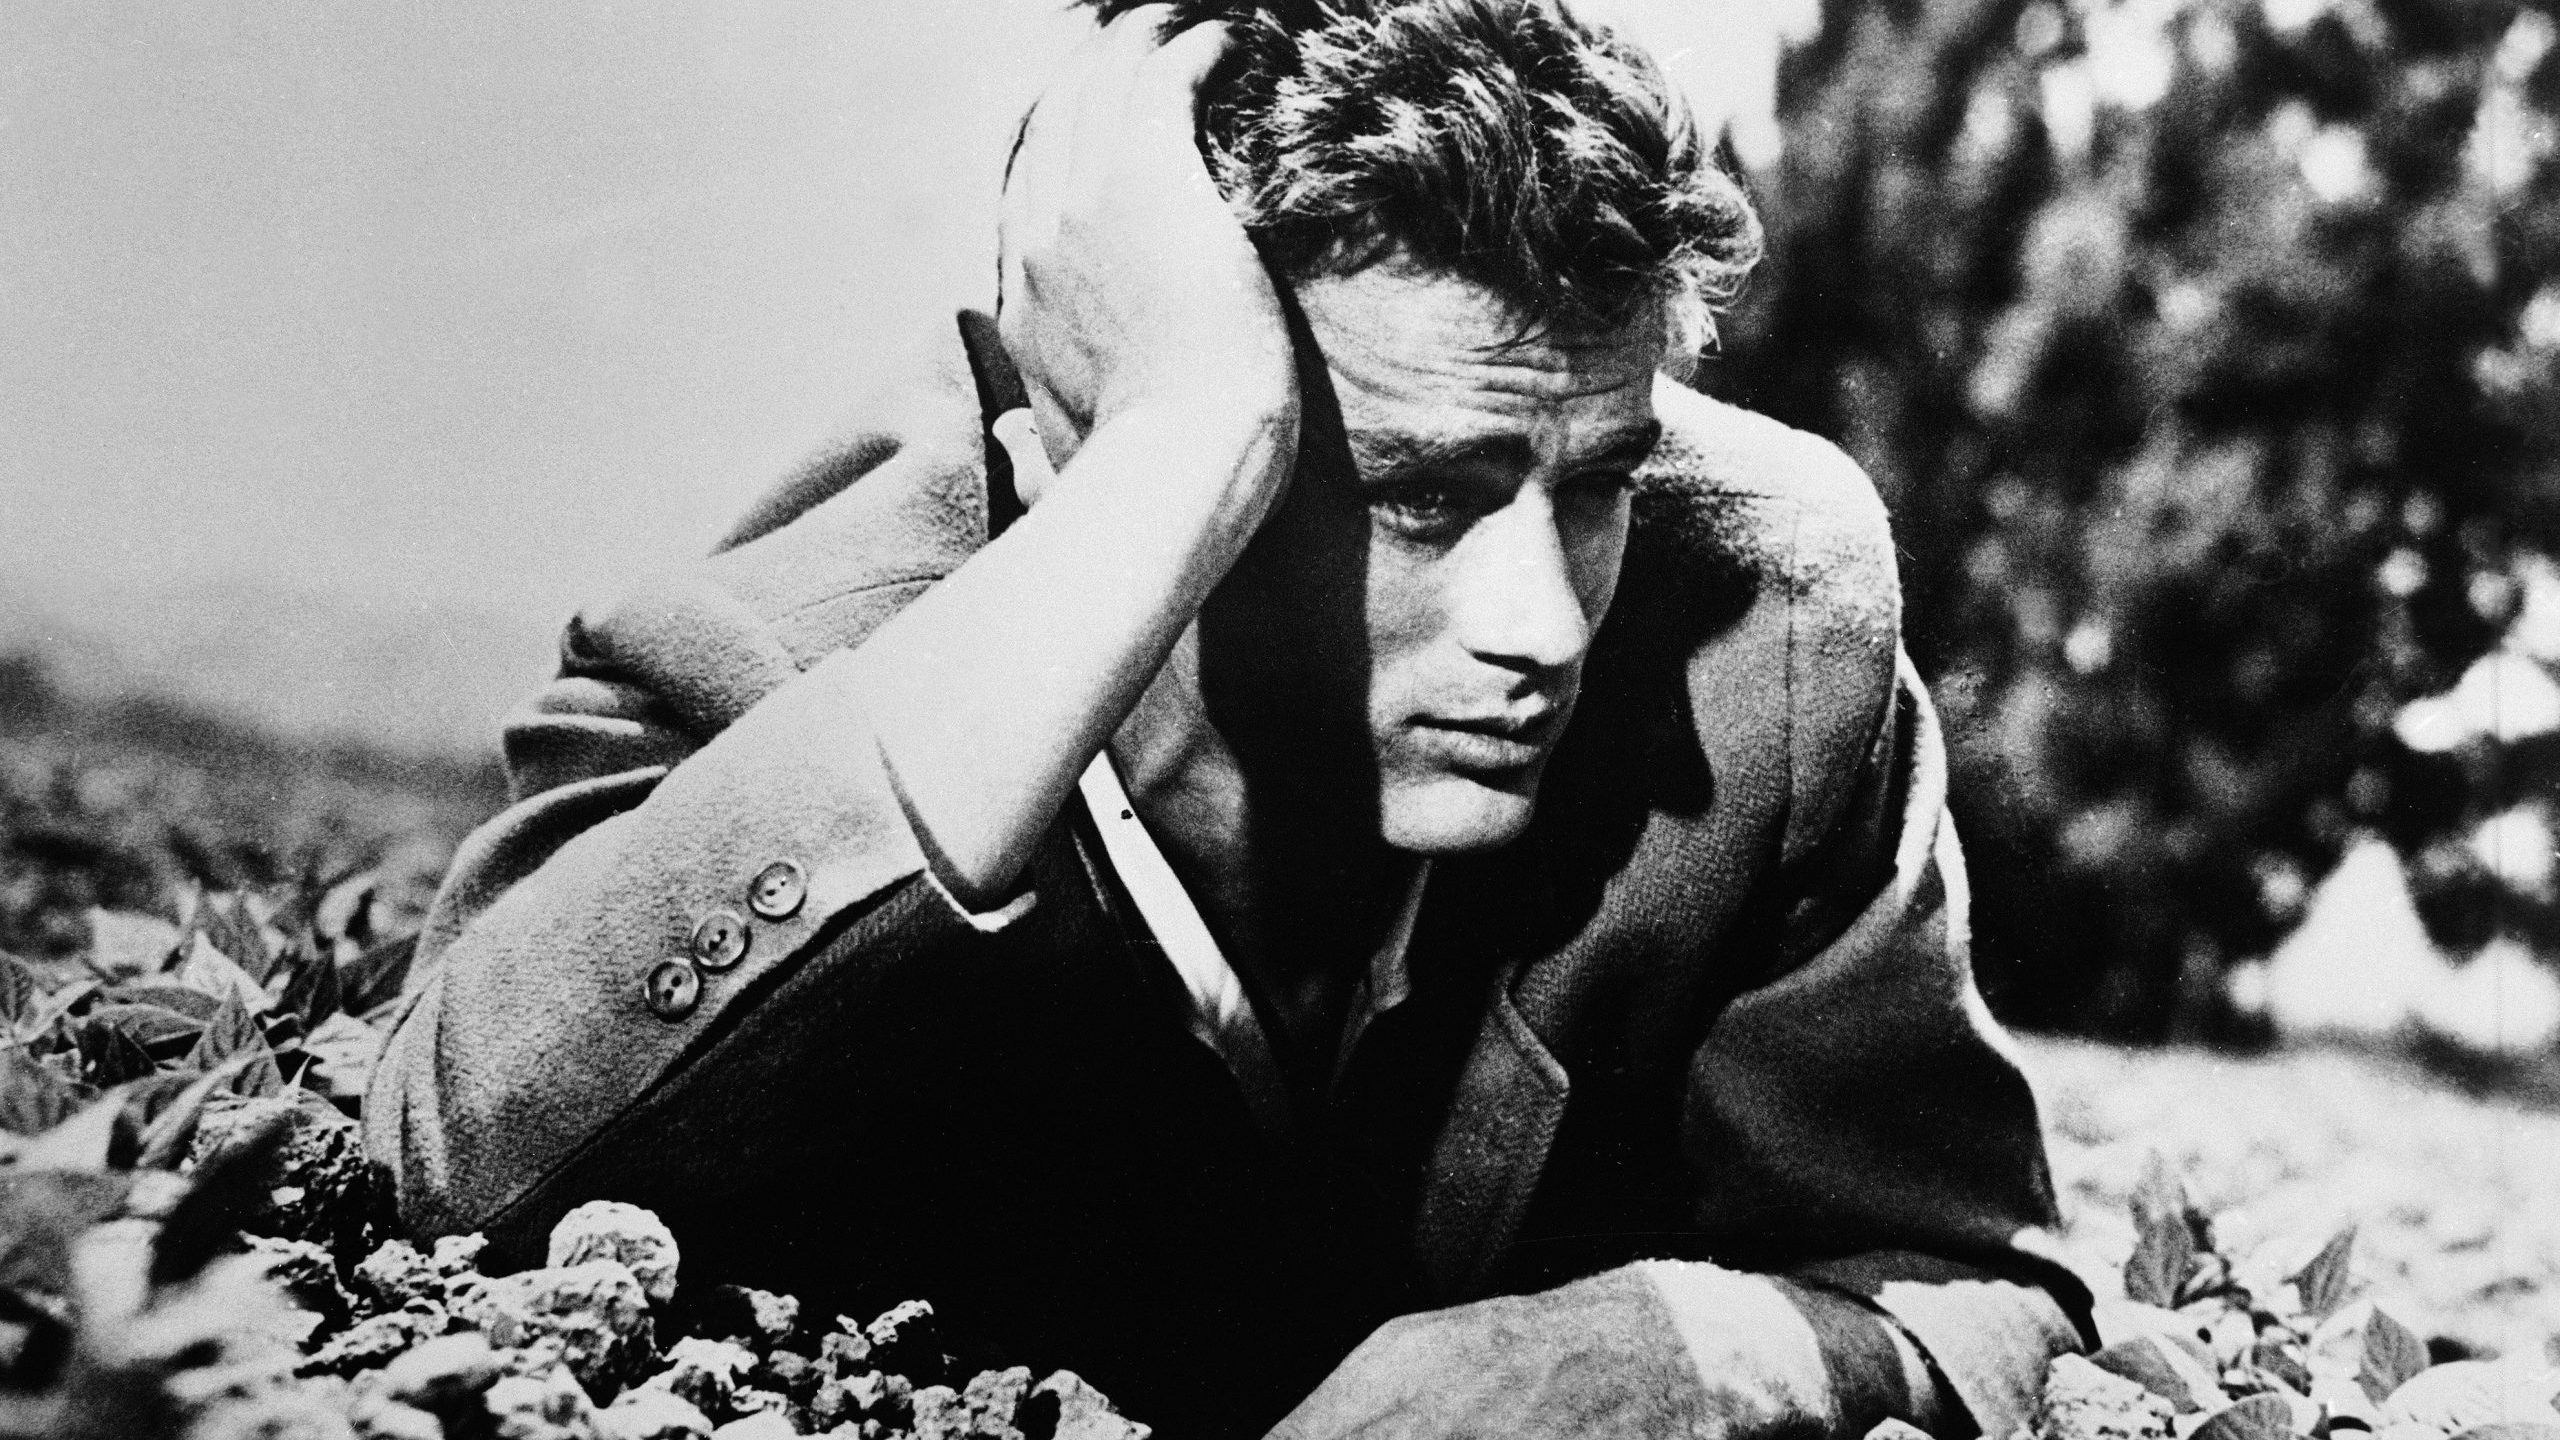 American actor James Dean lies in the dirt with his head leaning on his hand in this 1950s photo. (Credit: Hulton Archive/Getty Images)